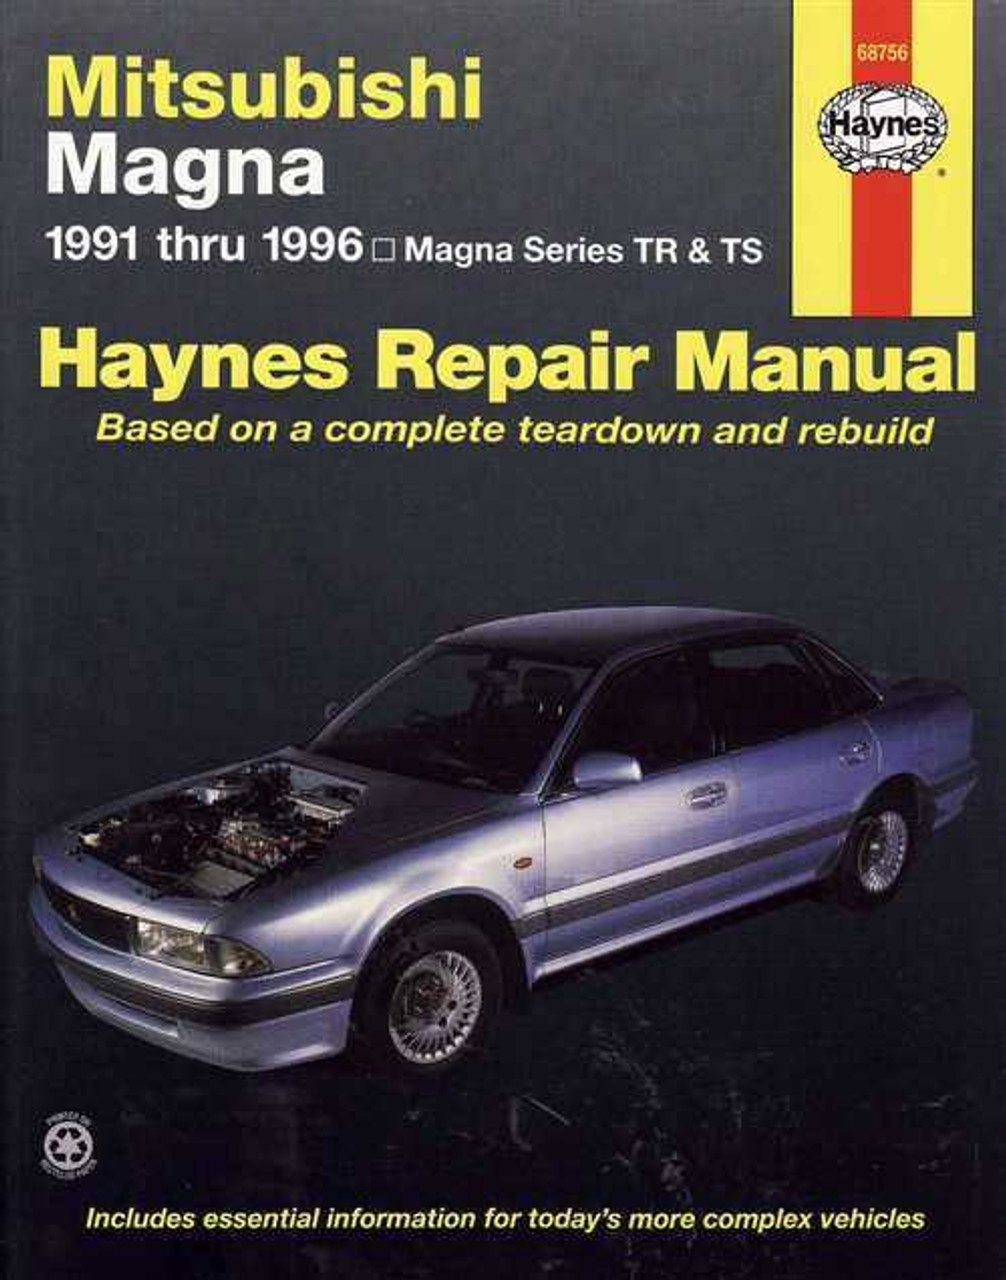 mitsubishi magna tr ts series 1991 1996 workshop manual. Black Bedroom Furniture Sets. Home Design Ideas